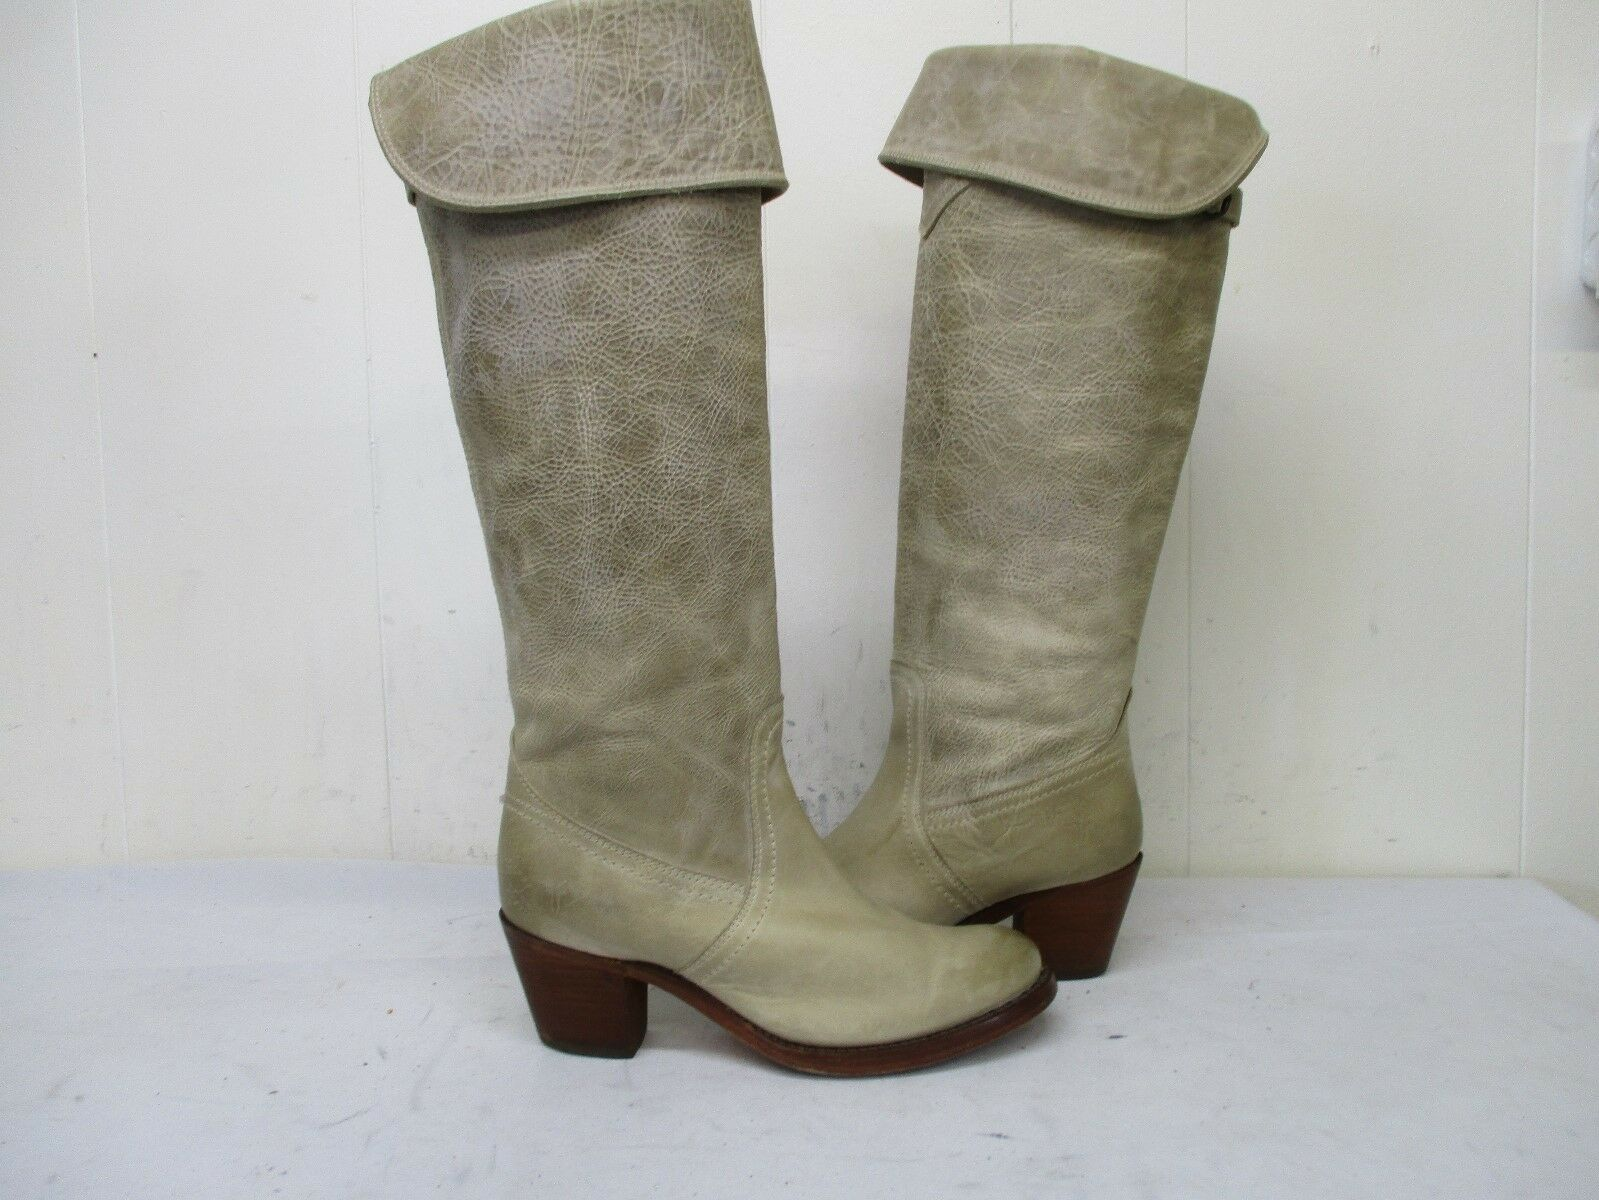 Frye Jane Tall Cuff Stone Leder Distressed Over the Knee Stiefel Damenschuhe Größe 6 B